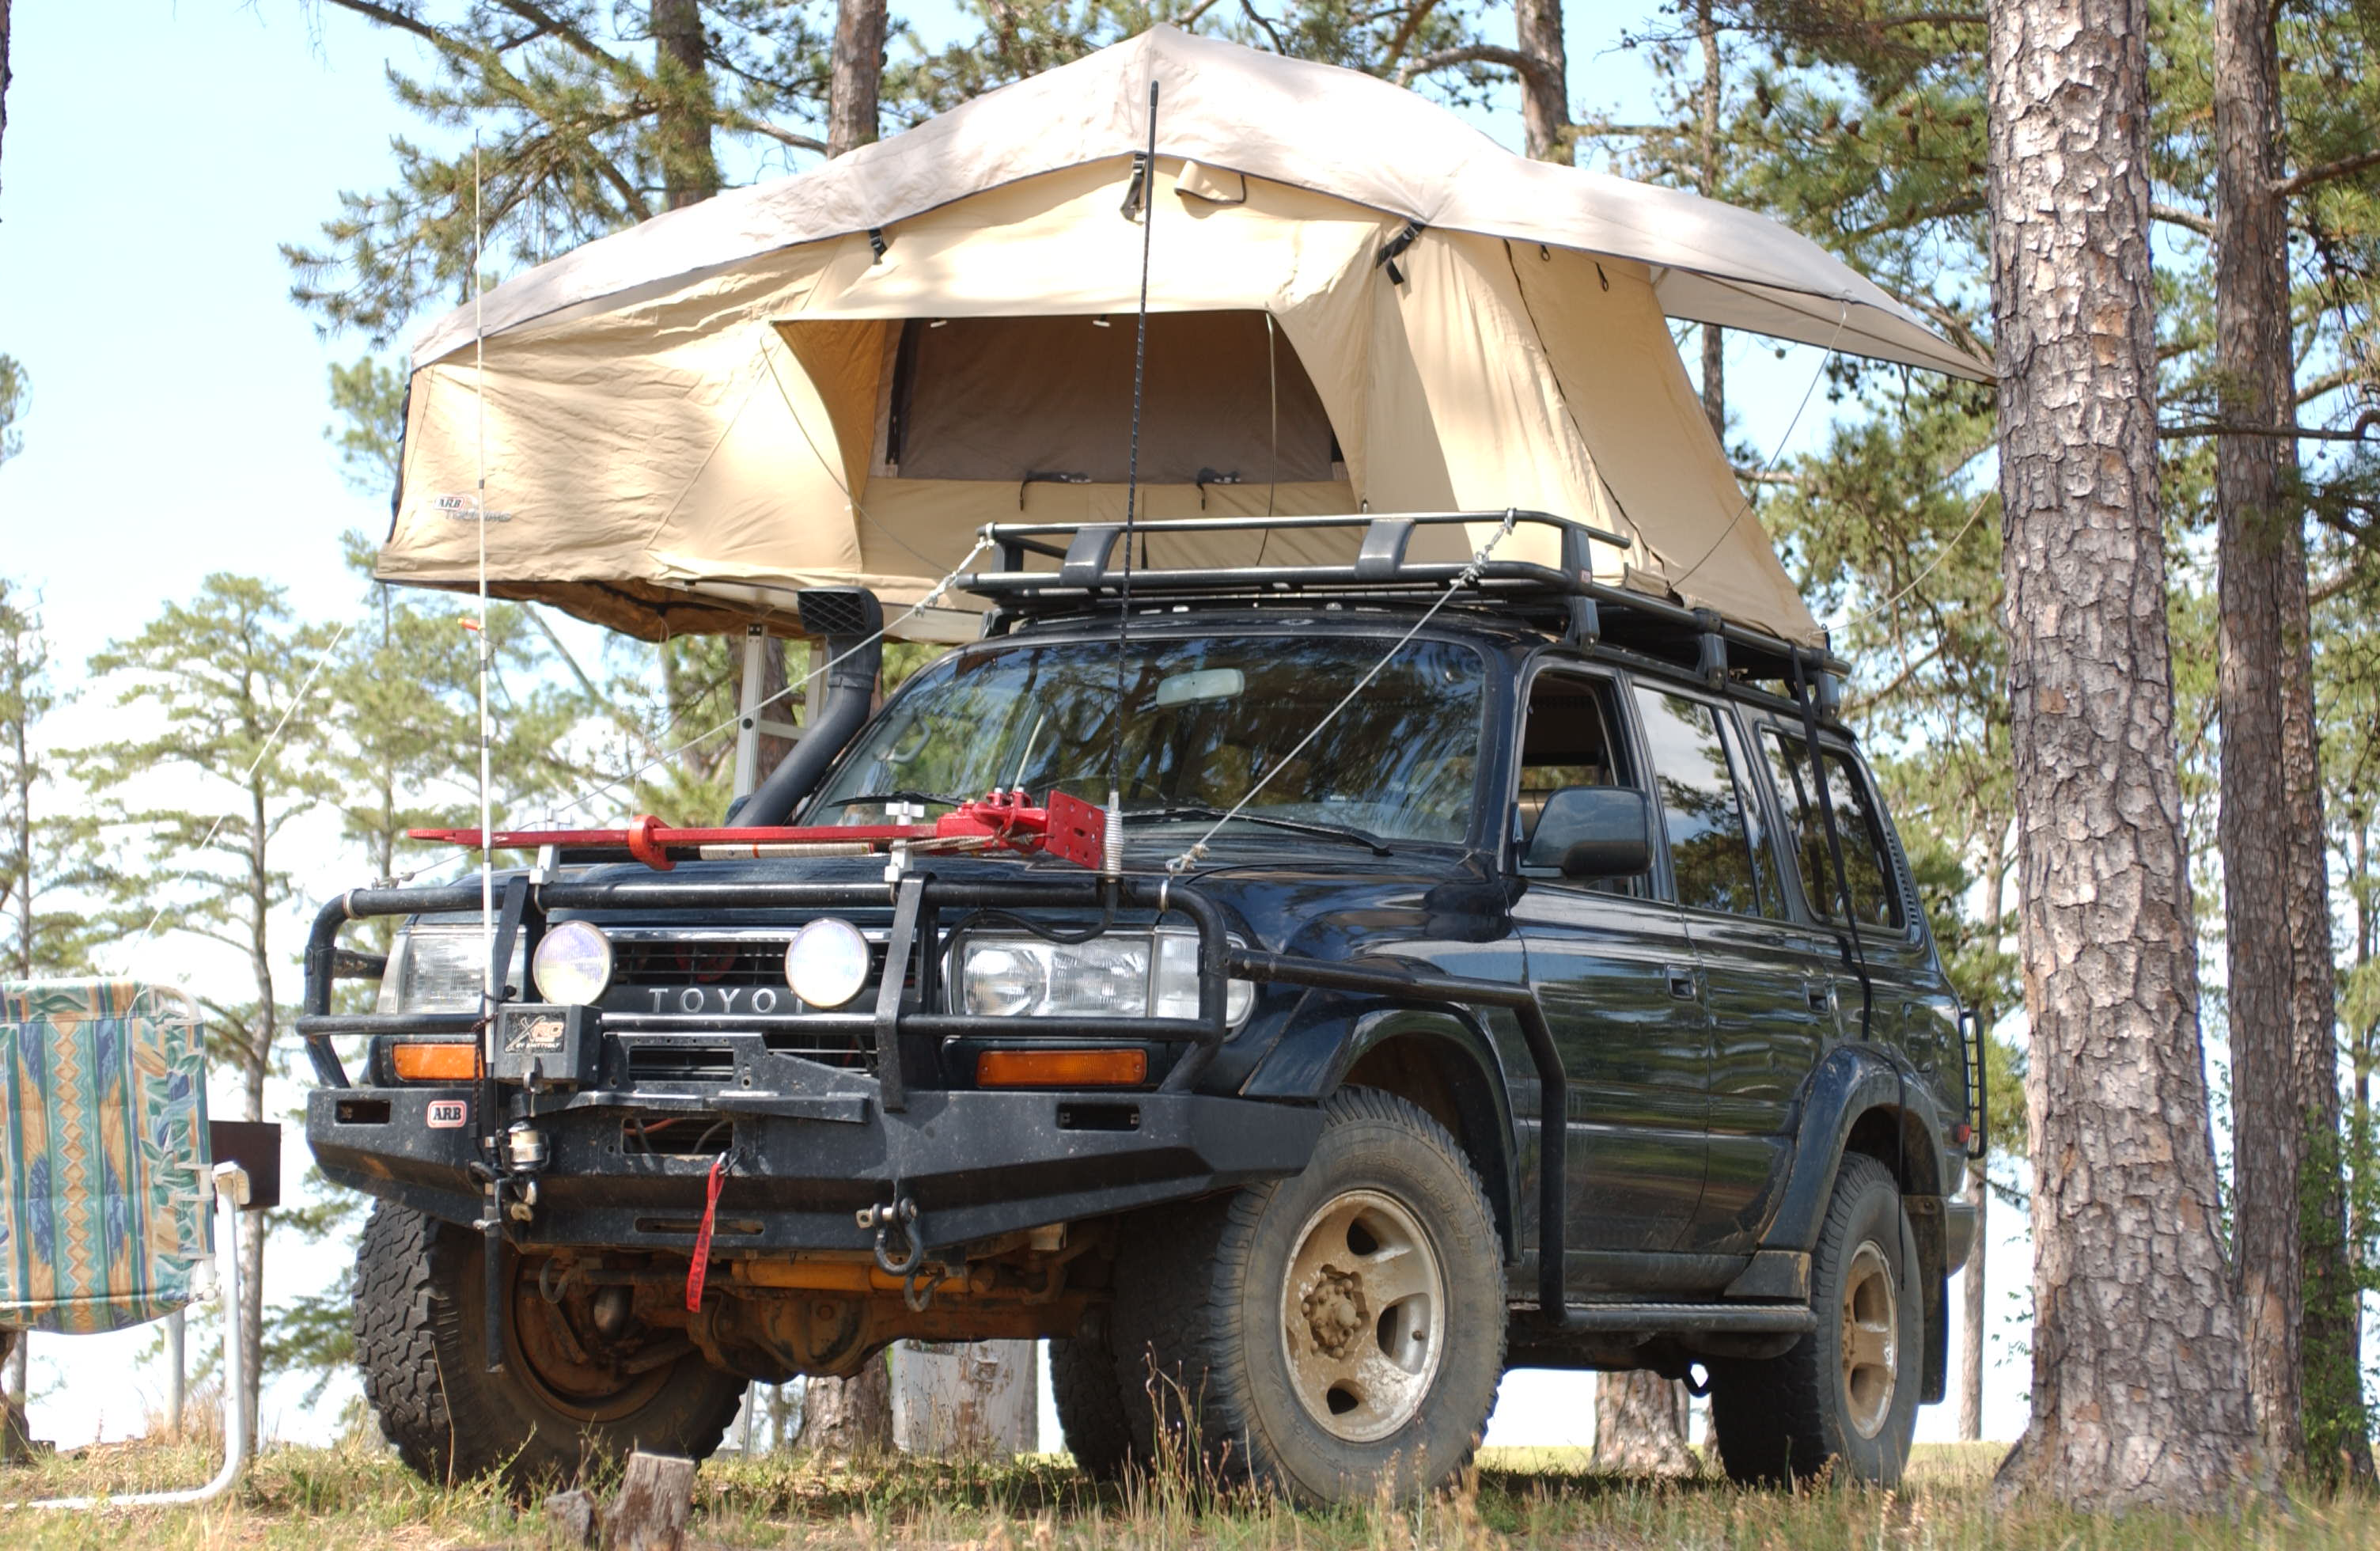 Can you identify the maker of this off road tent trailer? Photo included. [Archive] - Beyond.ca - Car Forums - Automotive Enthusiasts Community & Can you identify the maker of this off road tent trailer? Photo ...